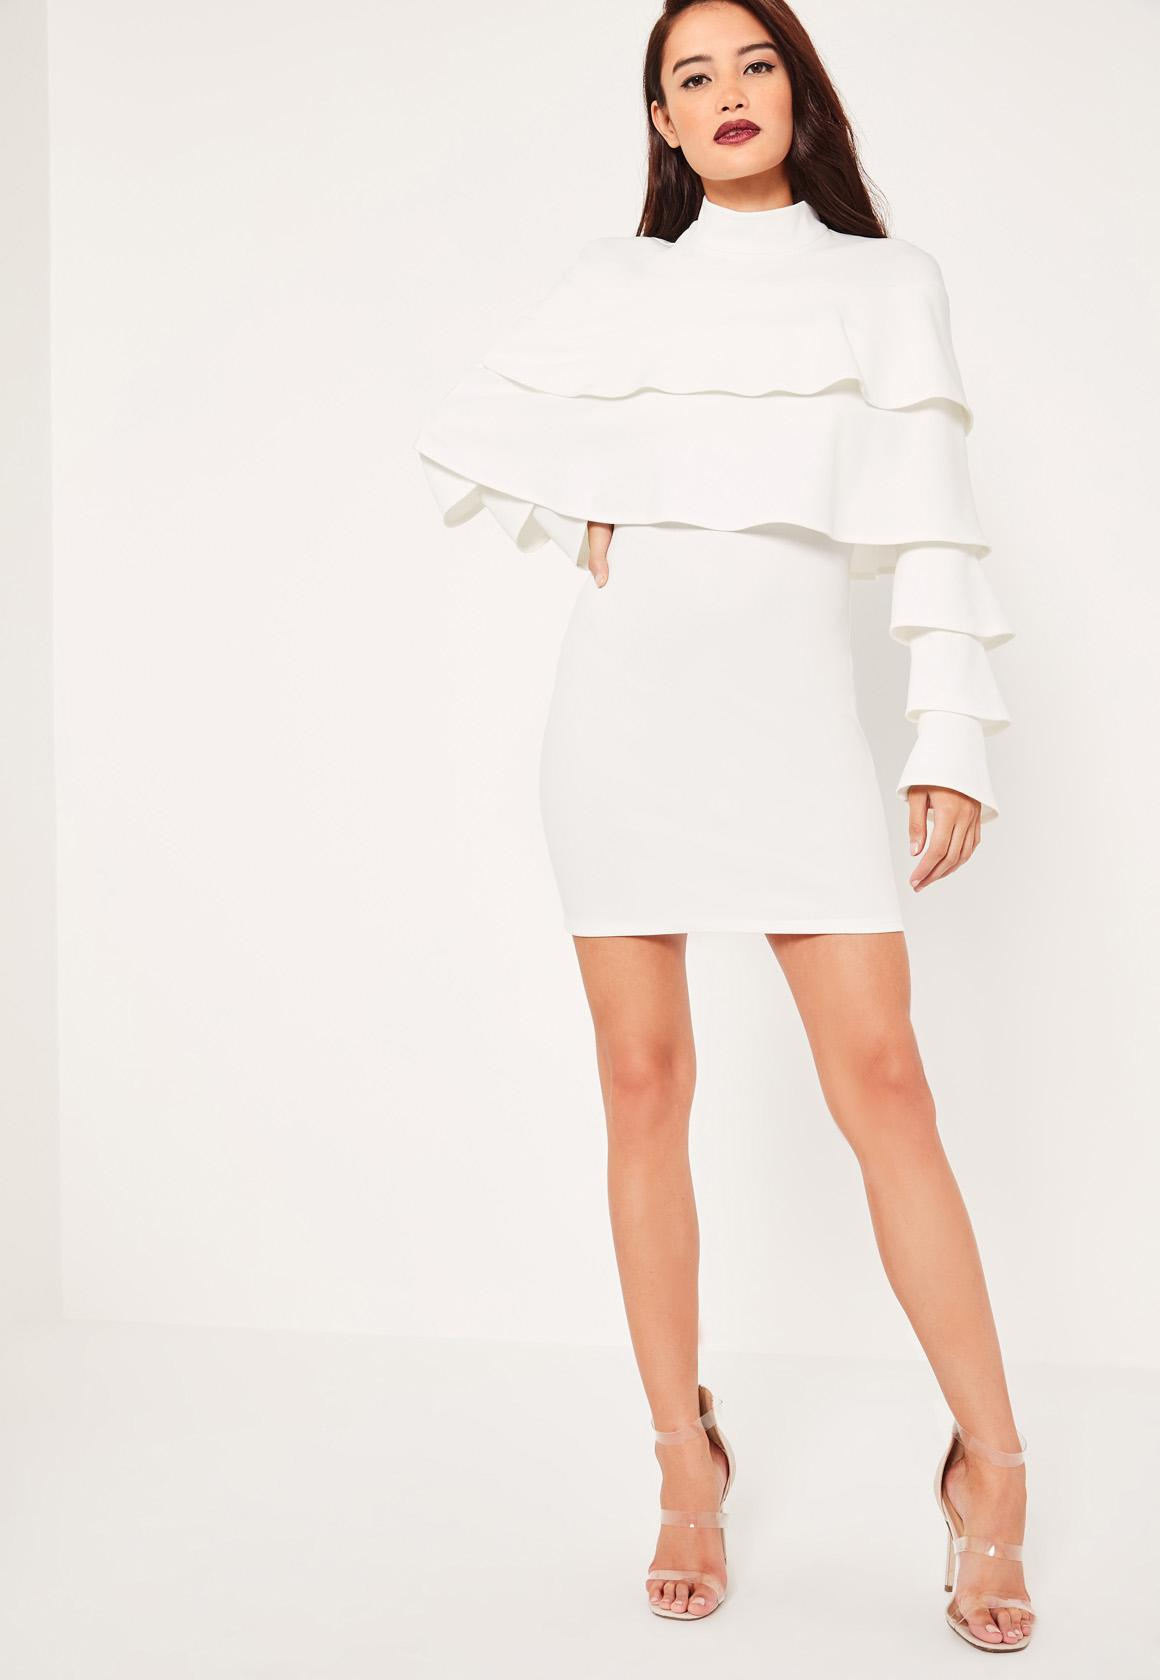 Layered White Dress